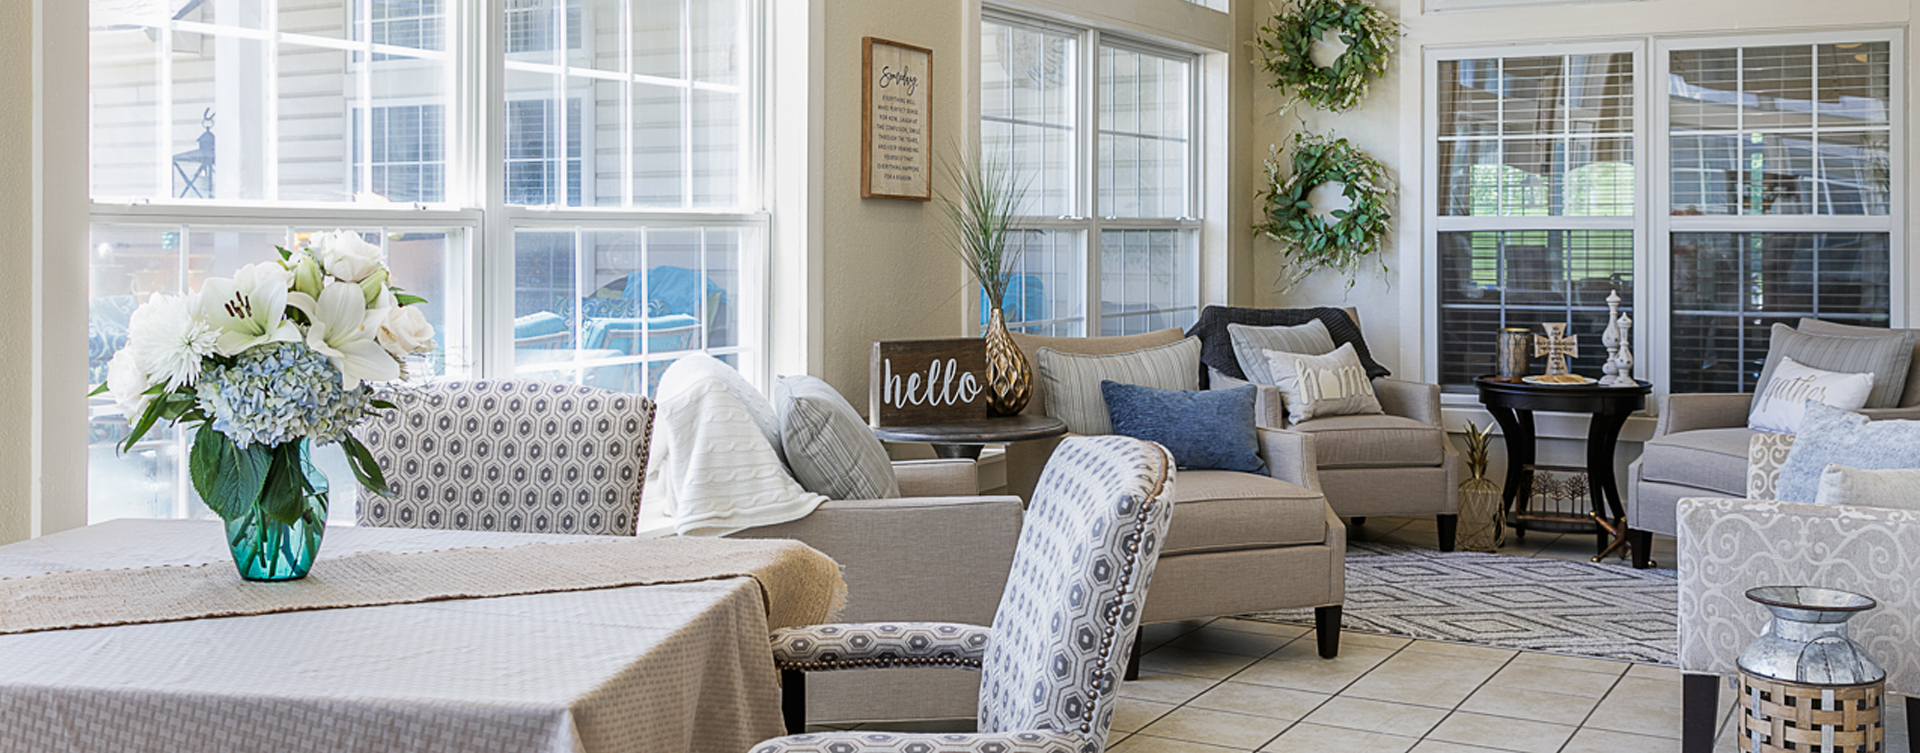 Relax in the warmth of the sunroom at Bickford of Marshalltown